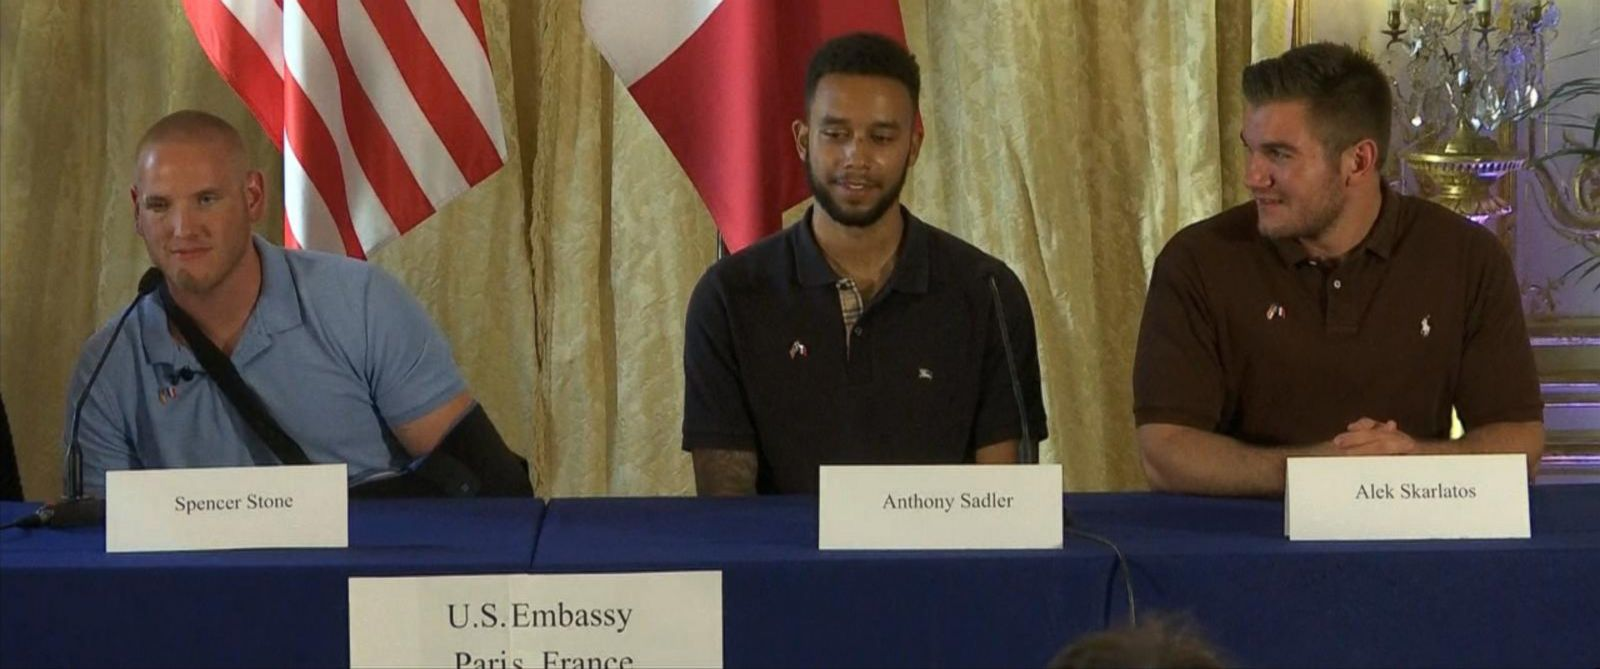 PHOTO: Spencer Stone, Anthony Sadler and Alek Skarlatos, three Americans involved in stopping alleged gunman, speak at a news conference at the U.S. Embassy in Paris, Aug. 23, 2015.